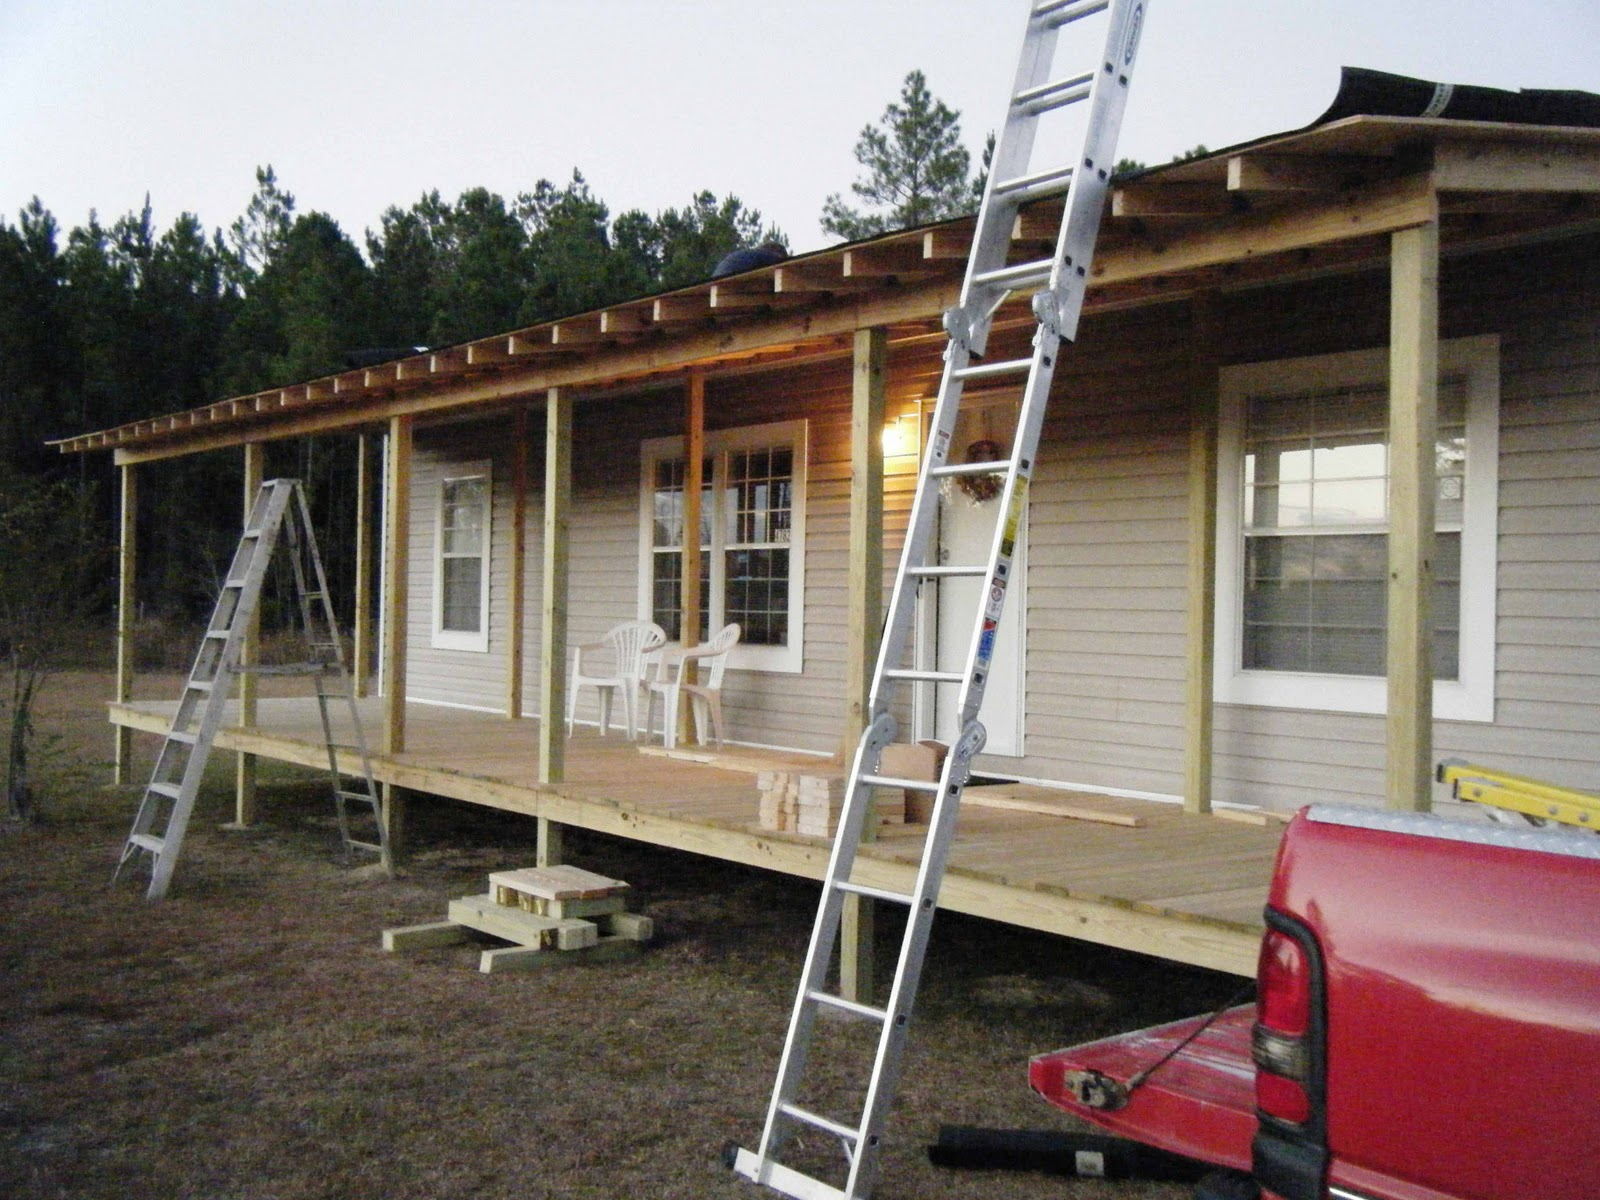 double wide trailer prices with 9 Beautiful Manufactured Home Porches on cascadefactoryhomes further 800sqft 999sqft Manufactured Homes additionally 9 Beautiful Manufactured Home Porches further hawkshomes also Single Wide Mobile Home 36040 8.